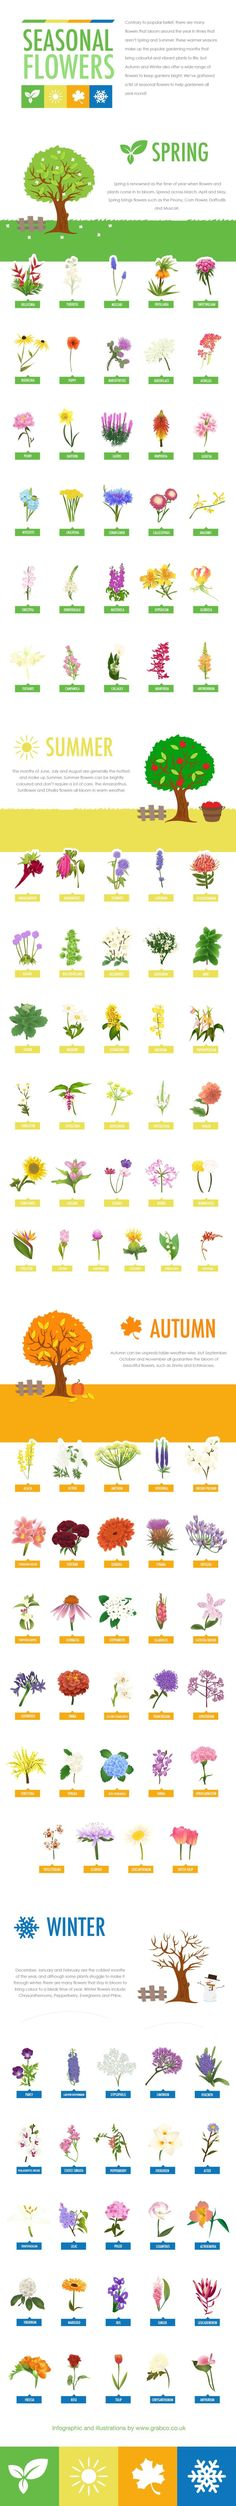 Contrary to popular belief, there are many flowers that bloom around the year in times that aren't Spring and Summer. Summer and Spring are popular gardening seasons and bring colourful and vibrant plants to life, but Autumn and Winter also offer a wide range of flowers to keep gardens bright. Here's a list of seasonal flowers to help gardeners all year round!